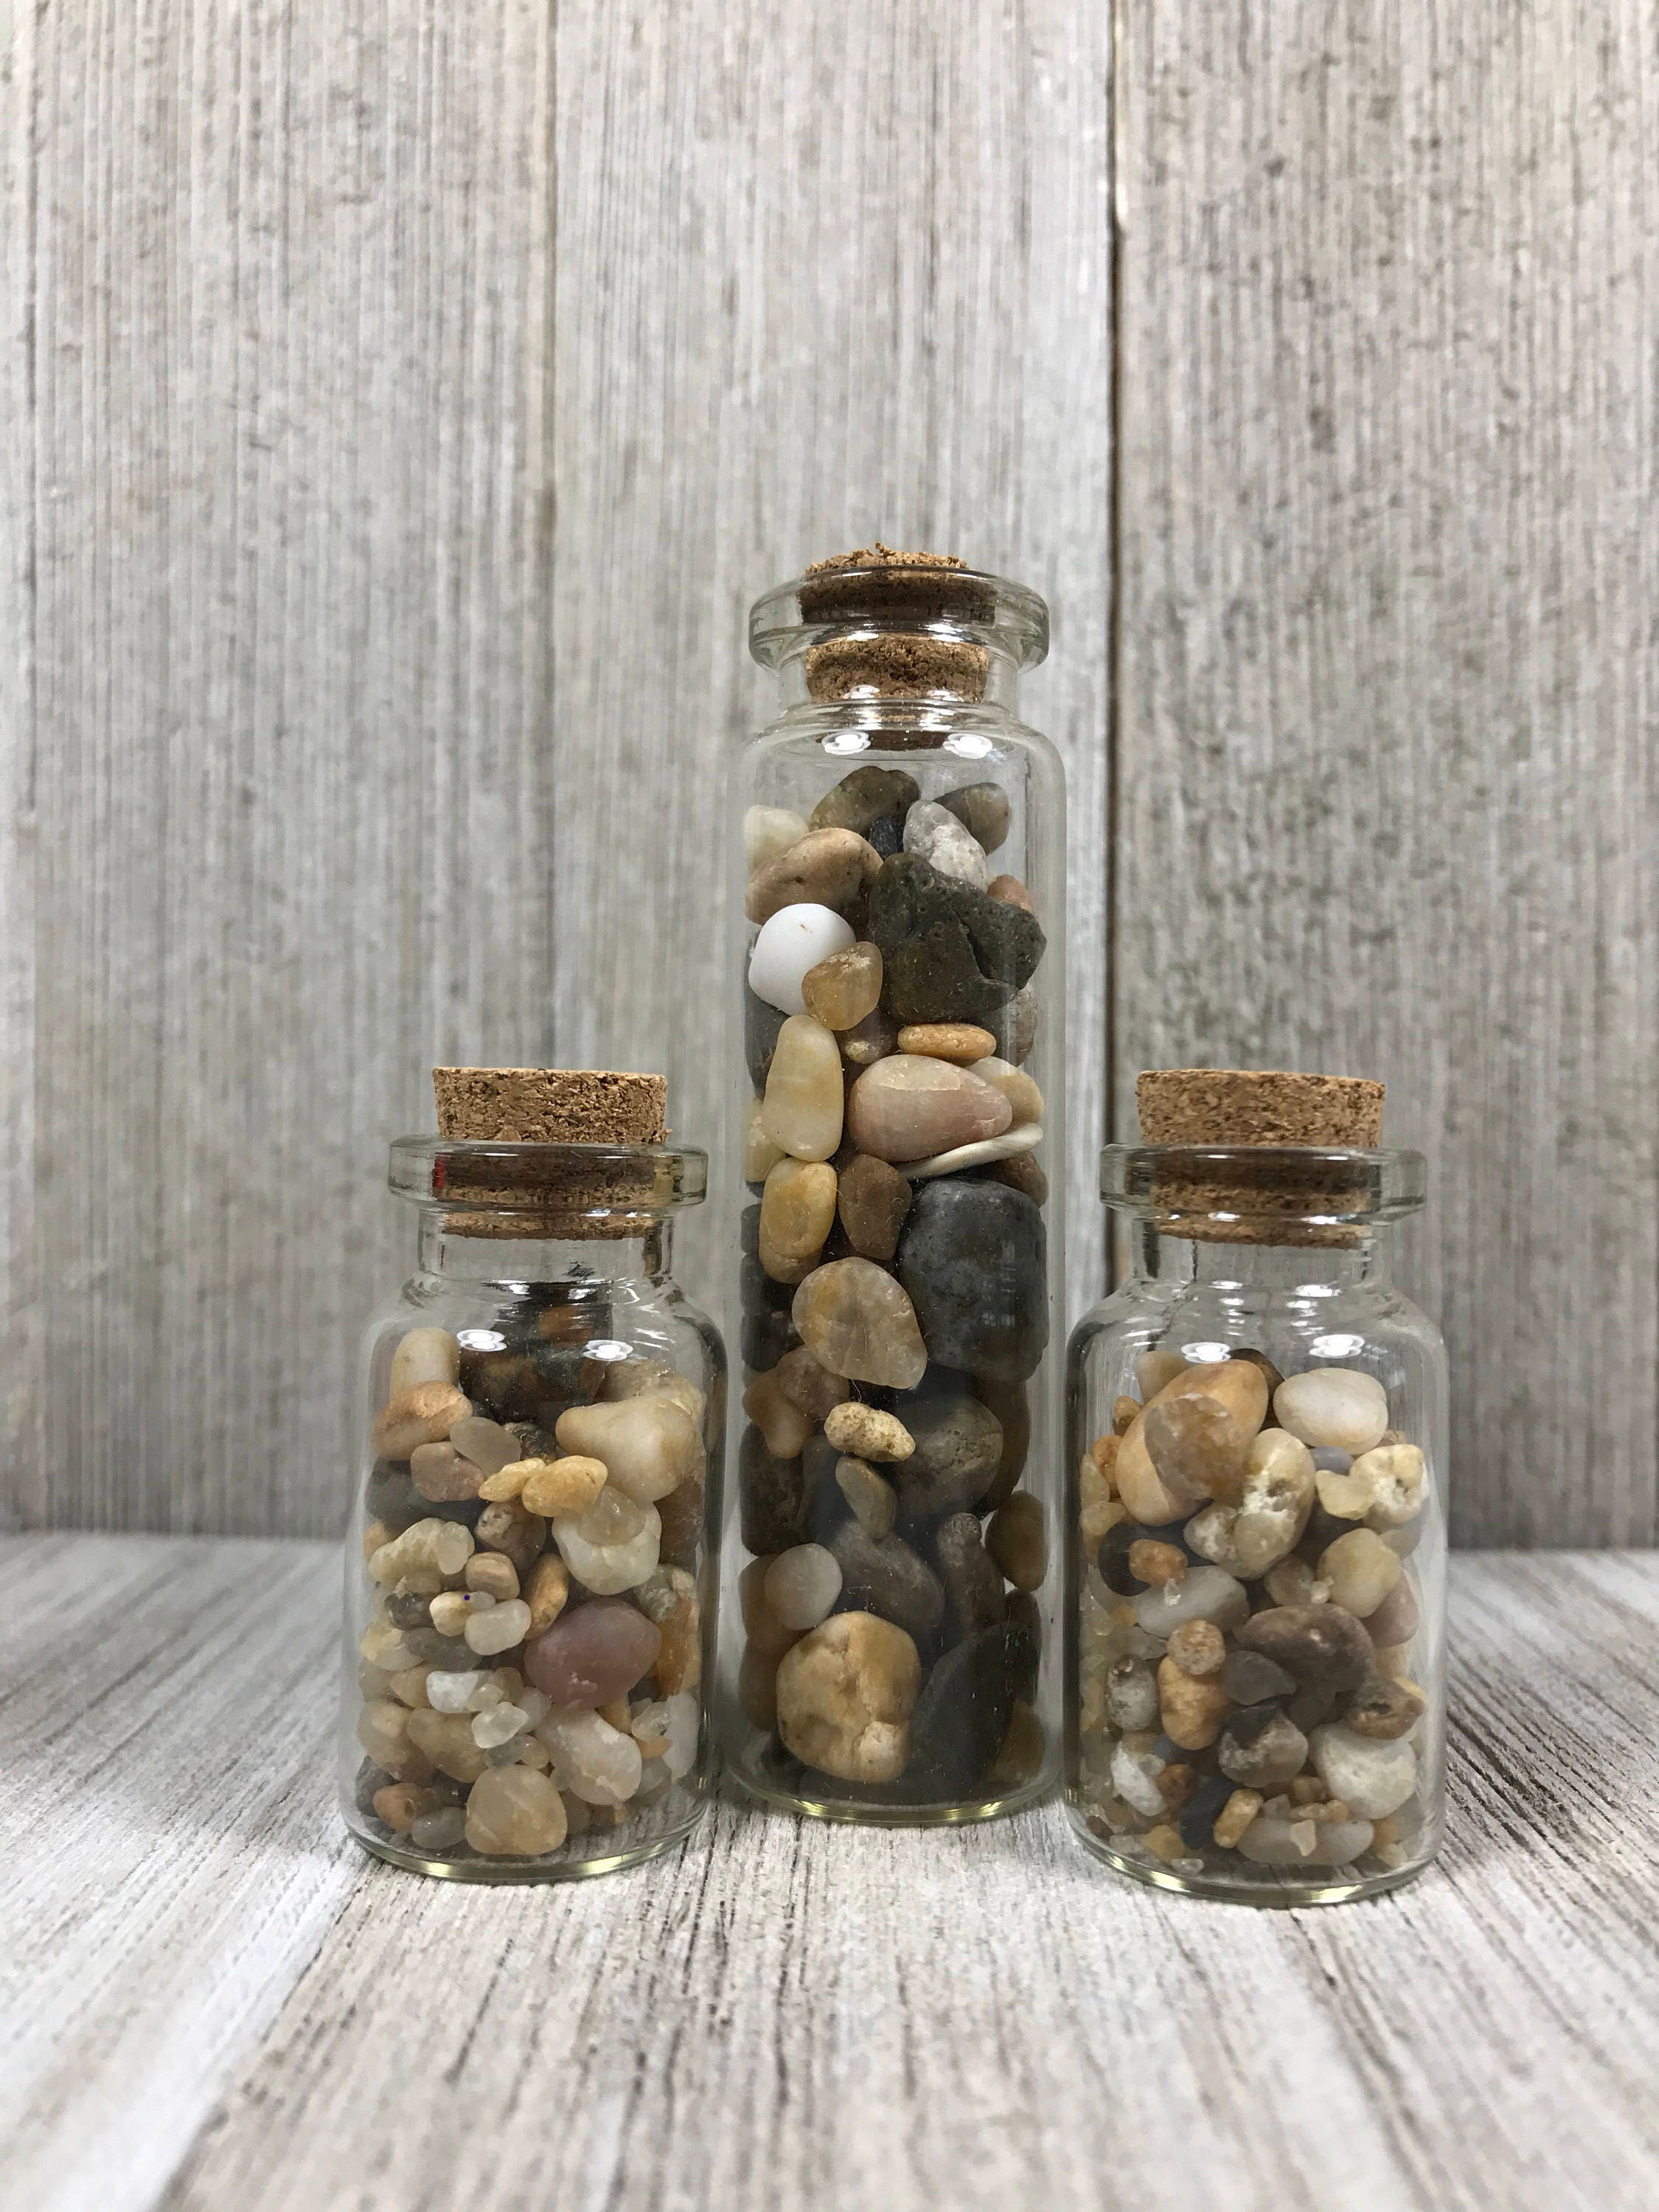 beach sand vials; glass vial of sea sand;jar of sand and pebbles